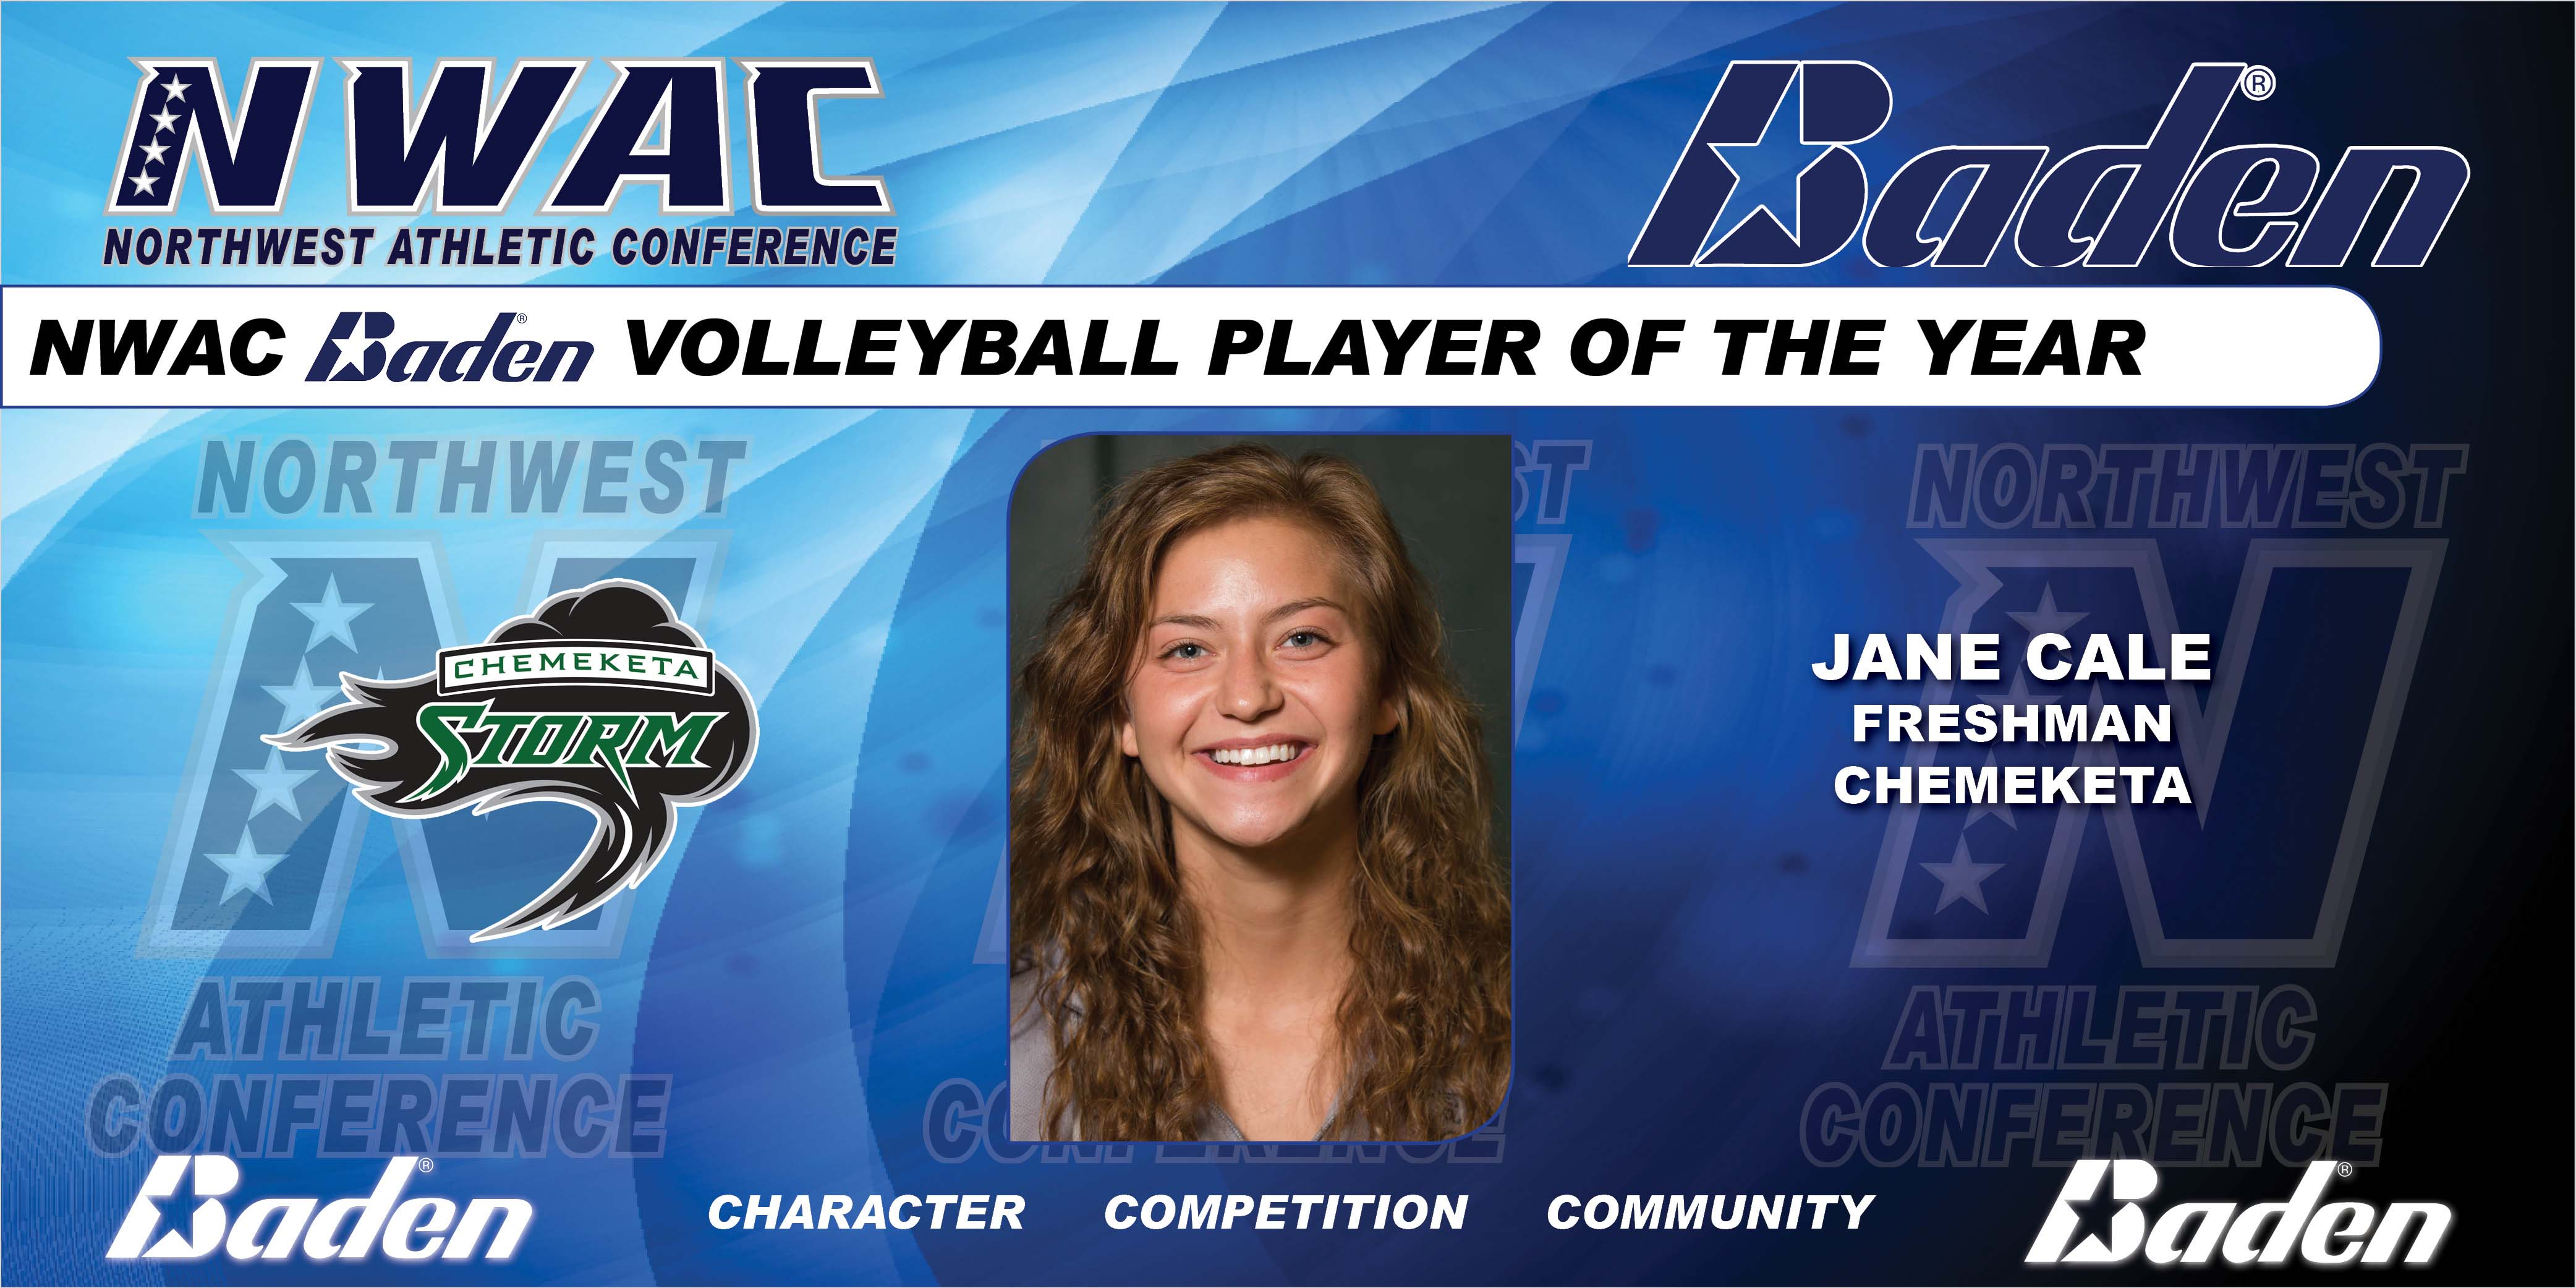 Jane Cale - Baden Volleyball Player of the Year Graphic